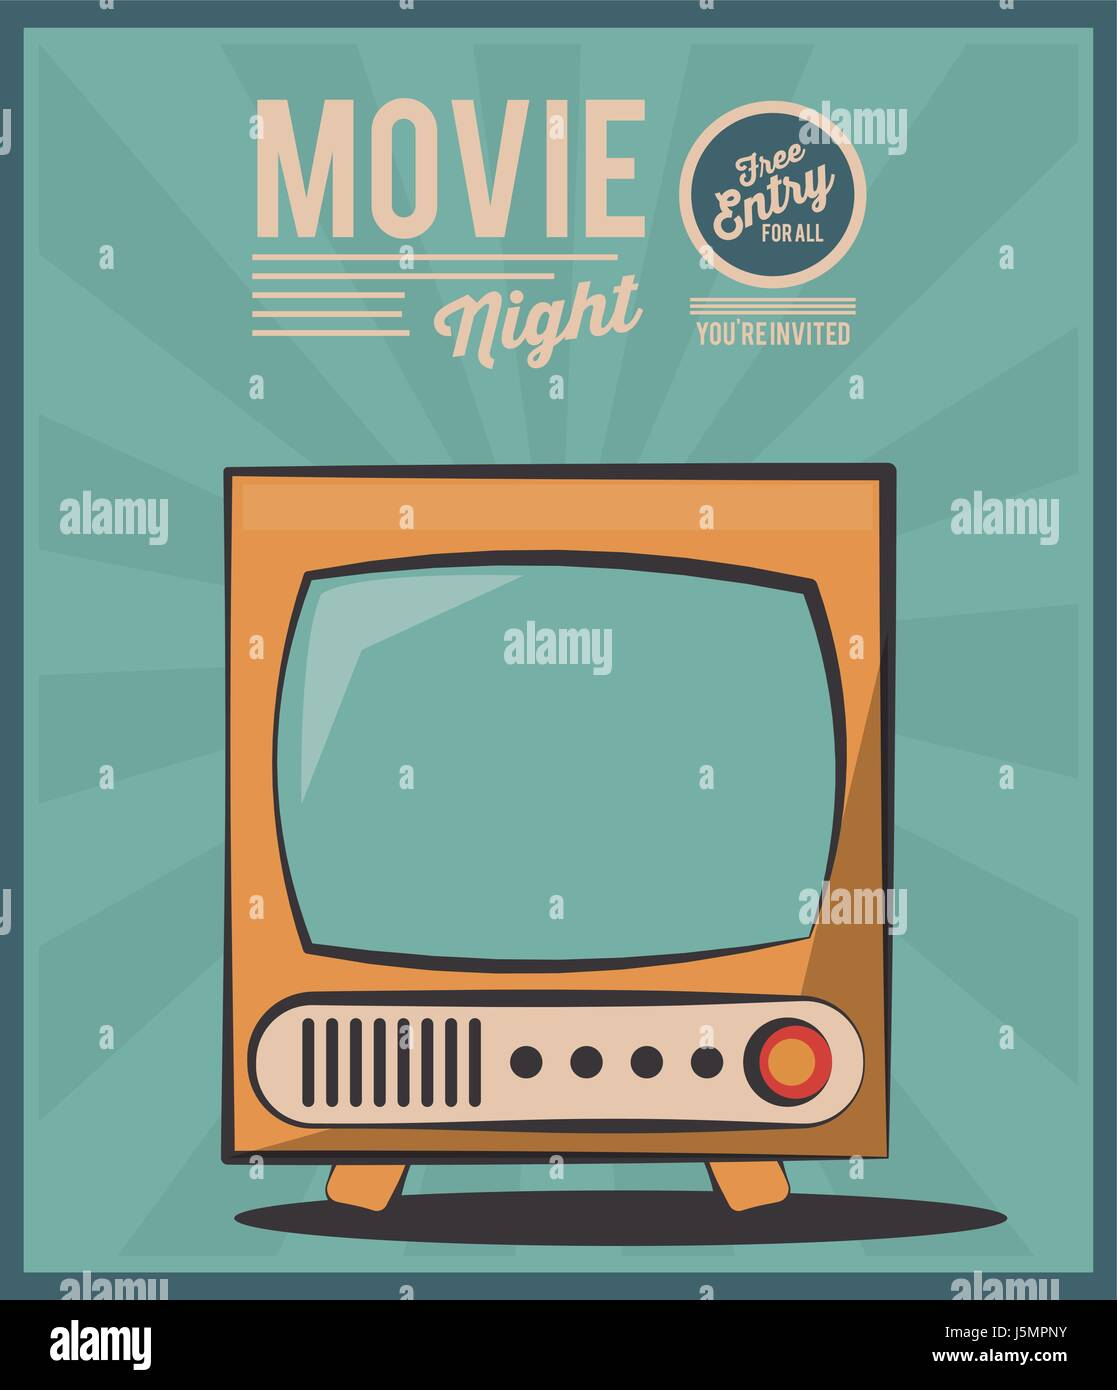 Vintage card movie night tv invitation image stock vector art vintage card movie night tv invitation image stopboris Image collections